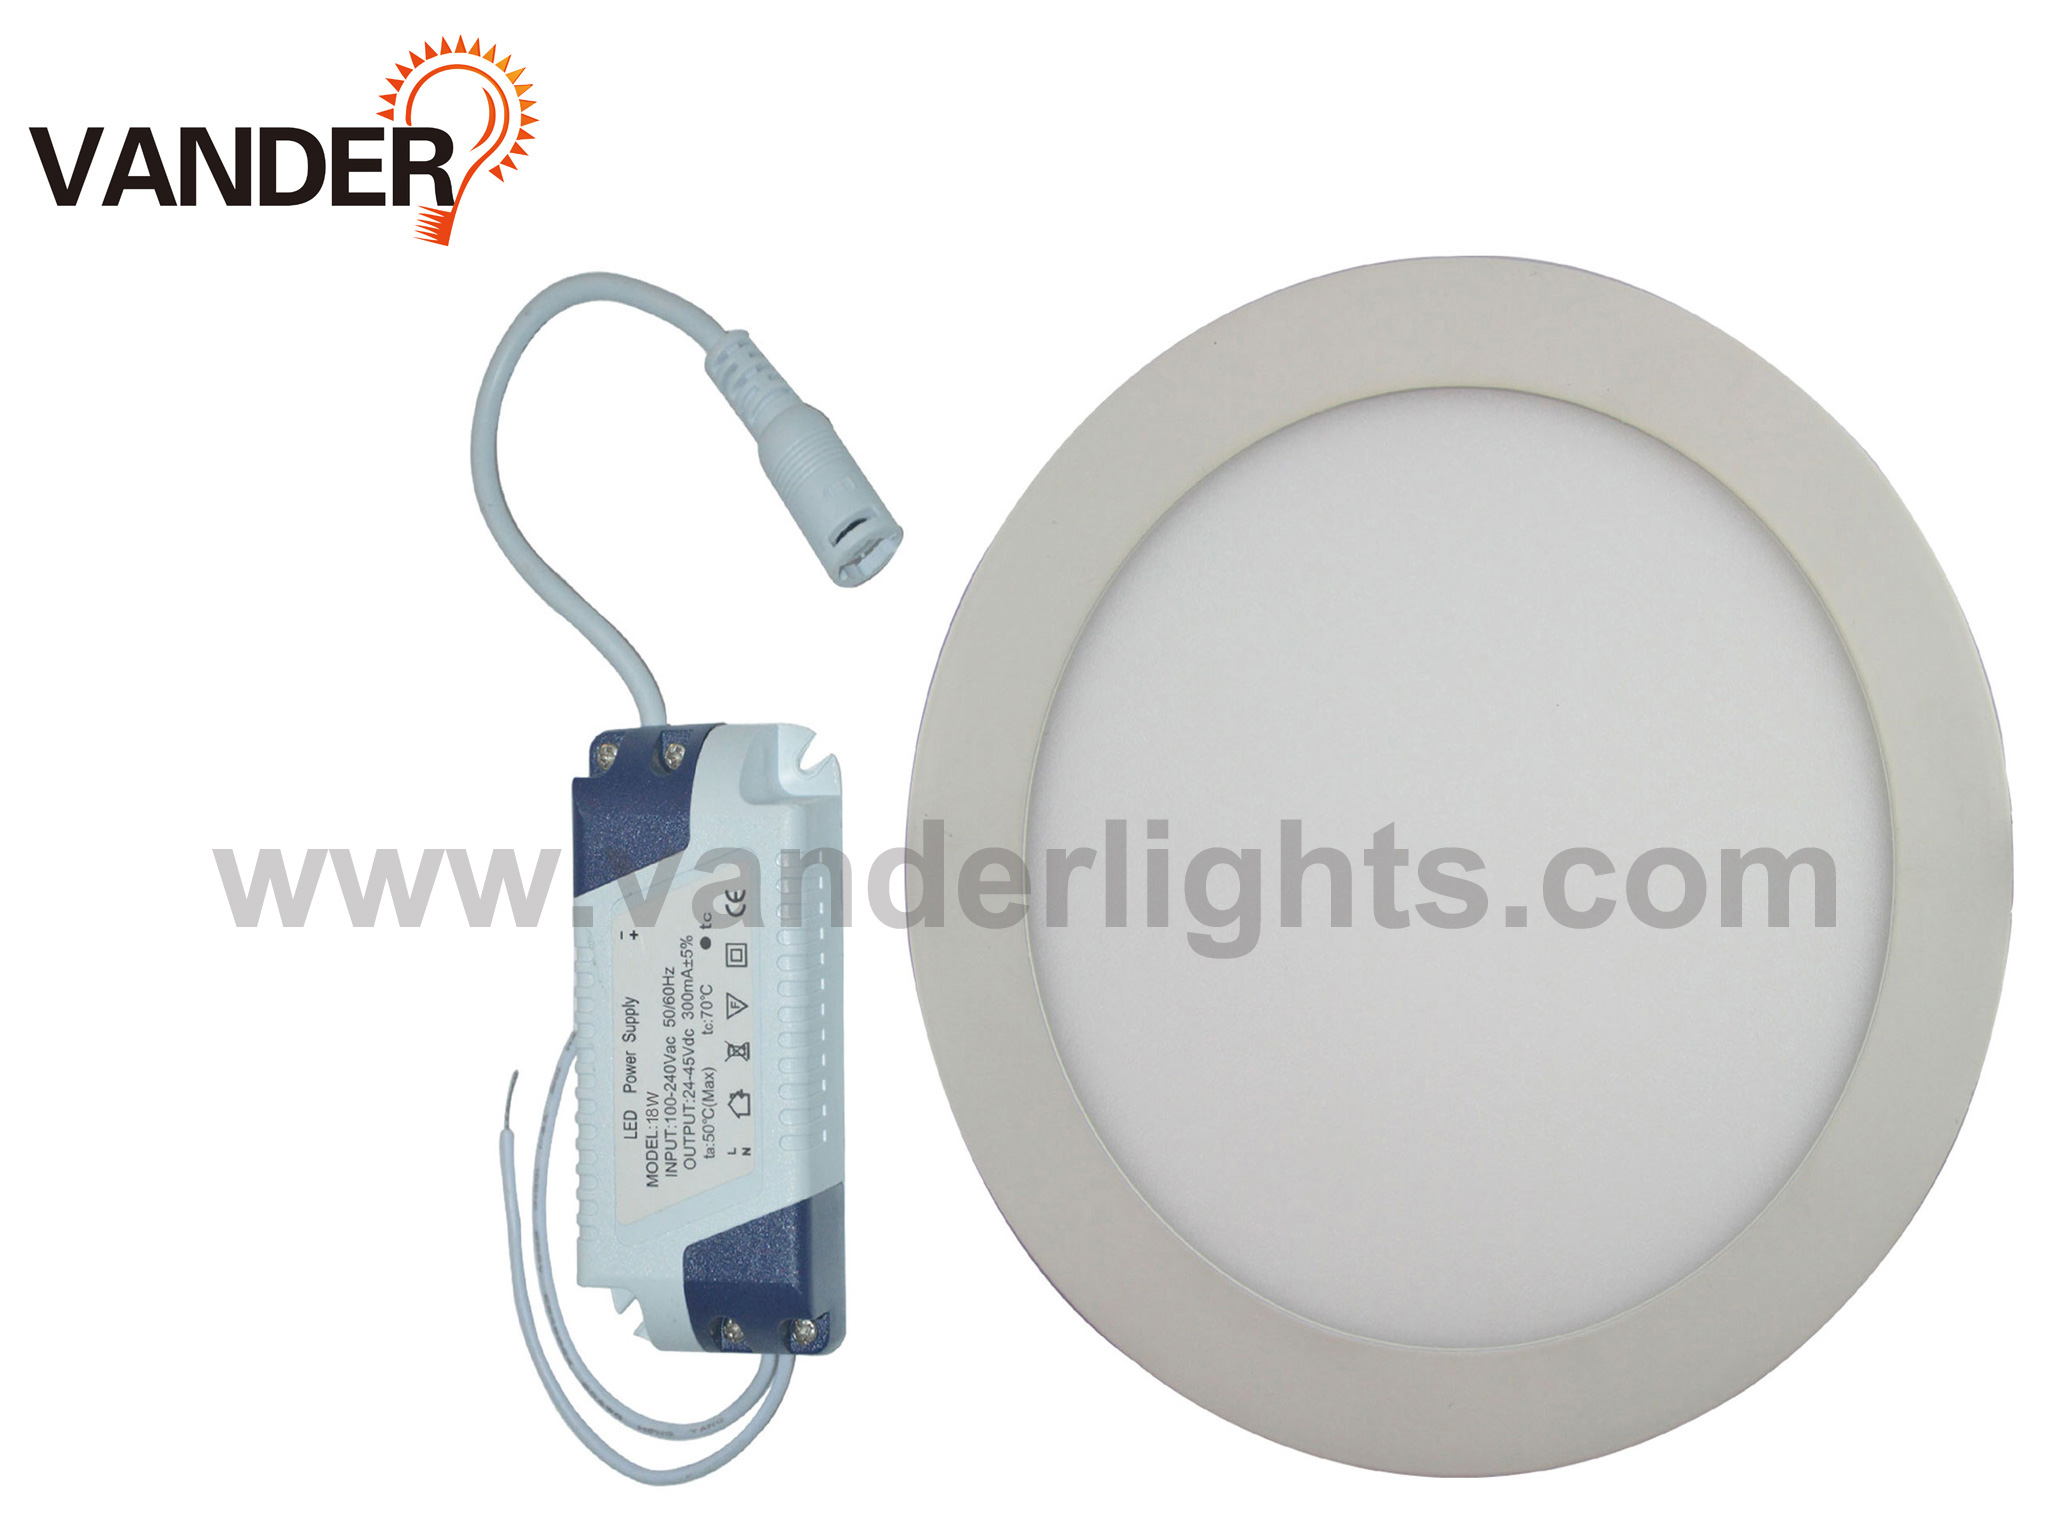 Round Series LED Panel Light from 3W to 24W